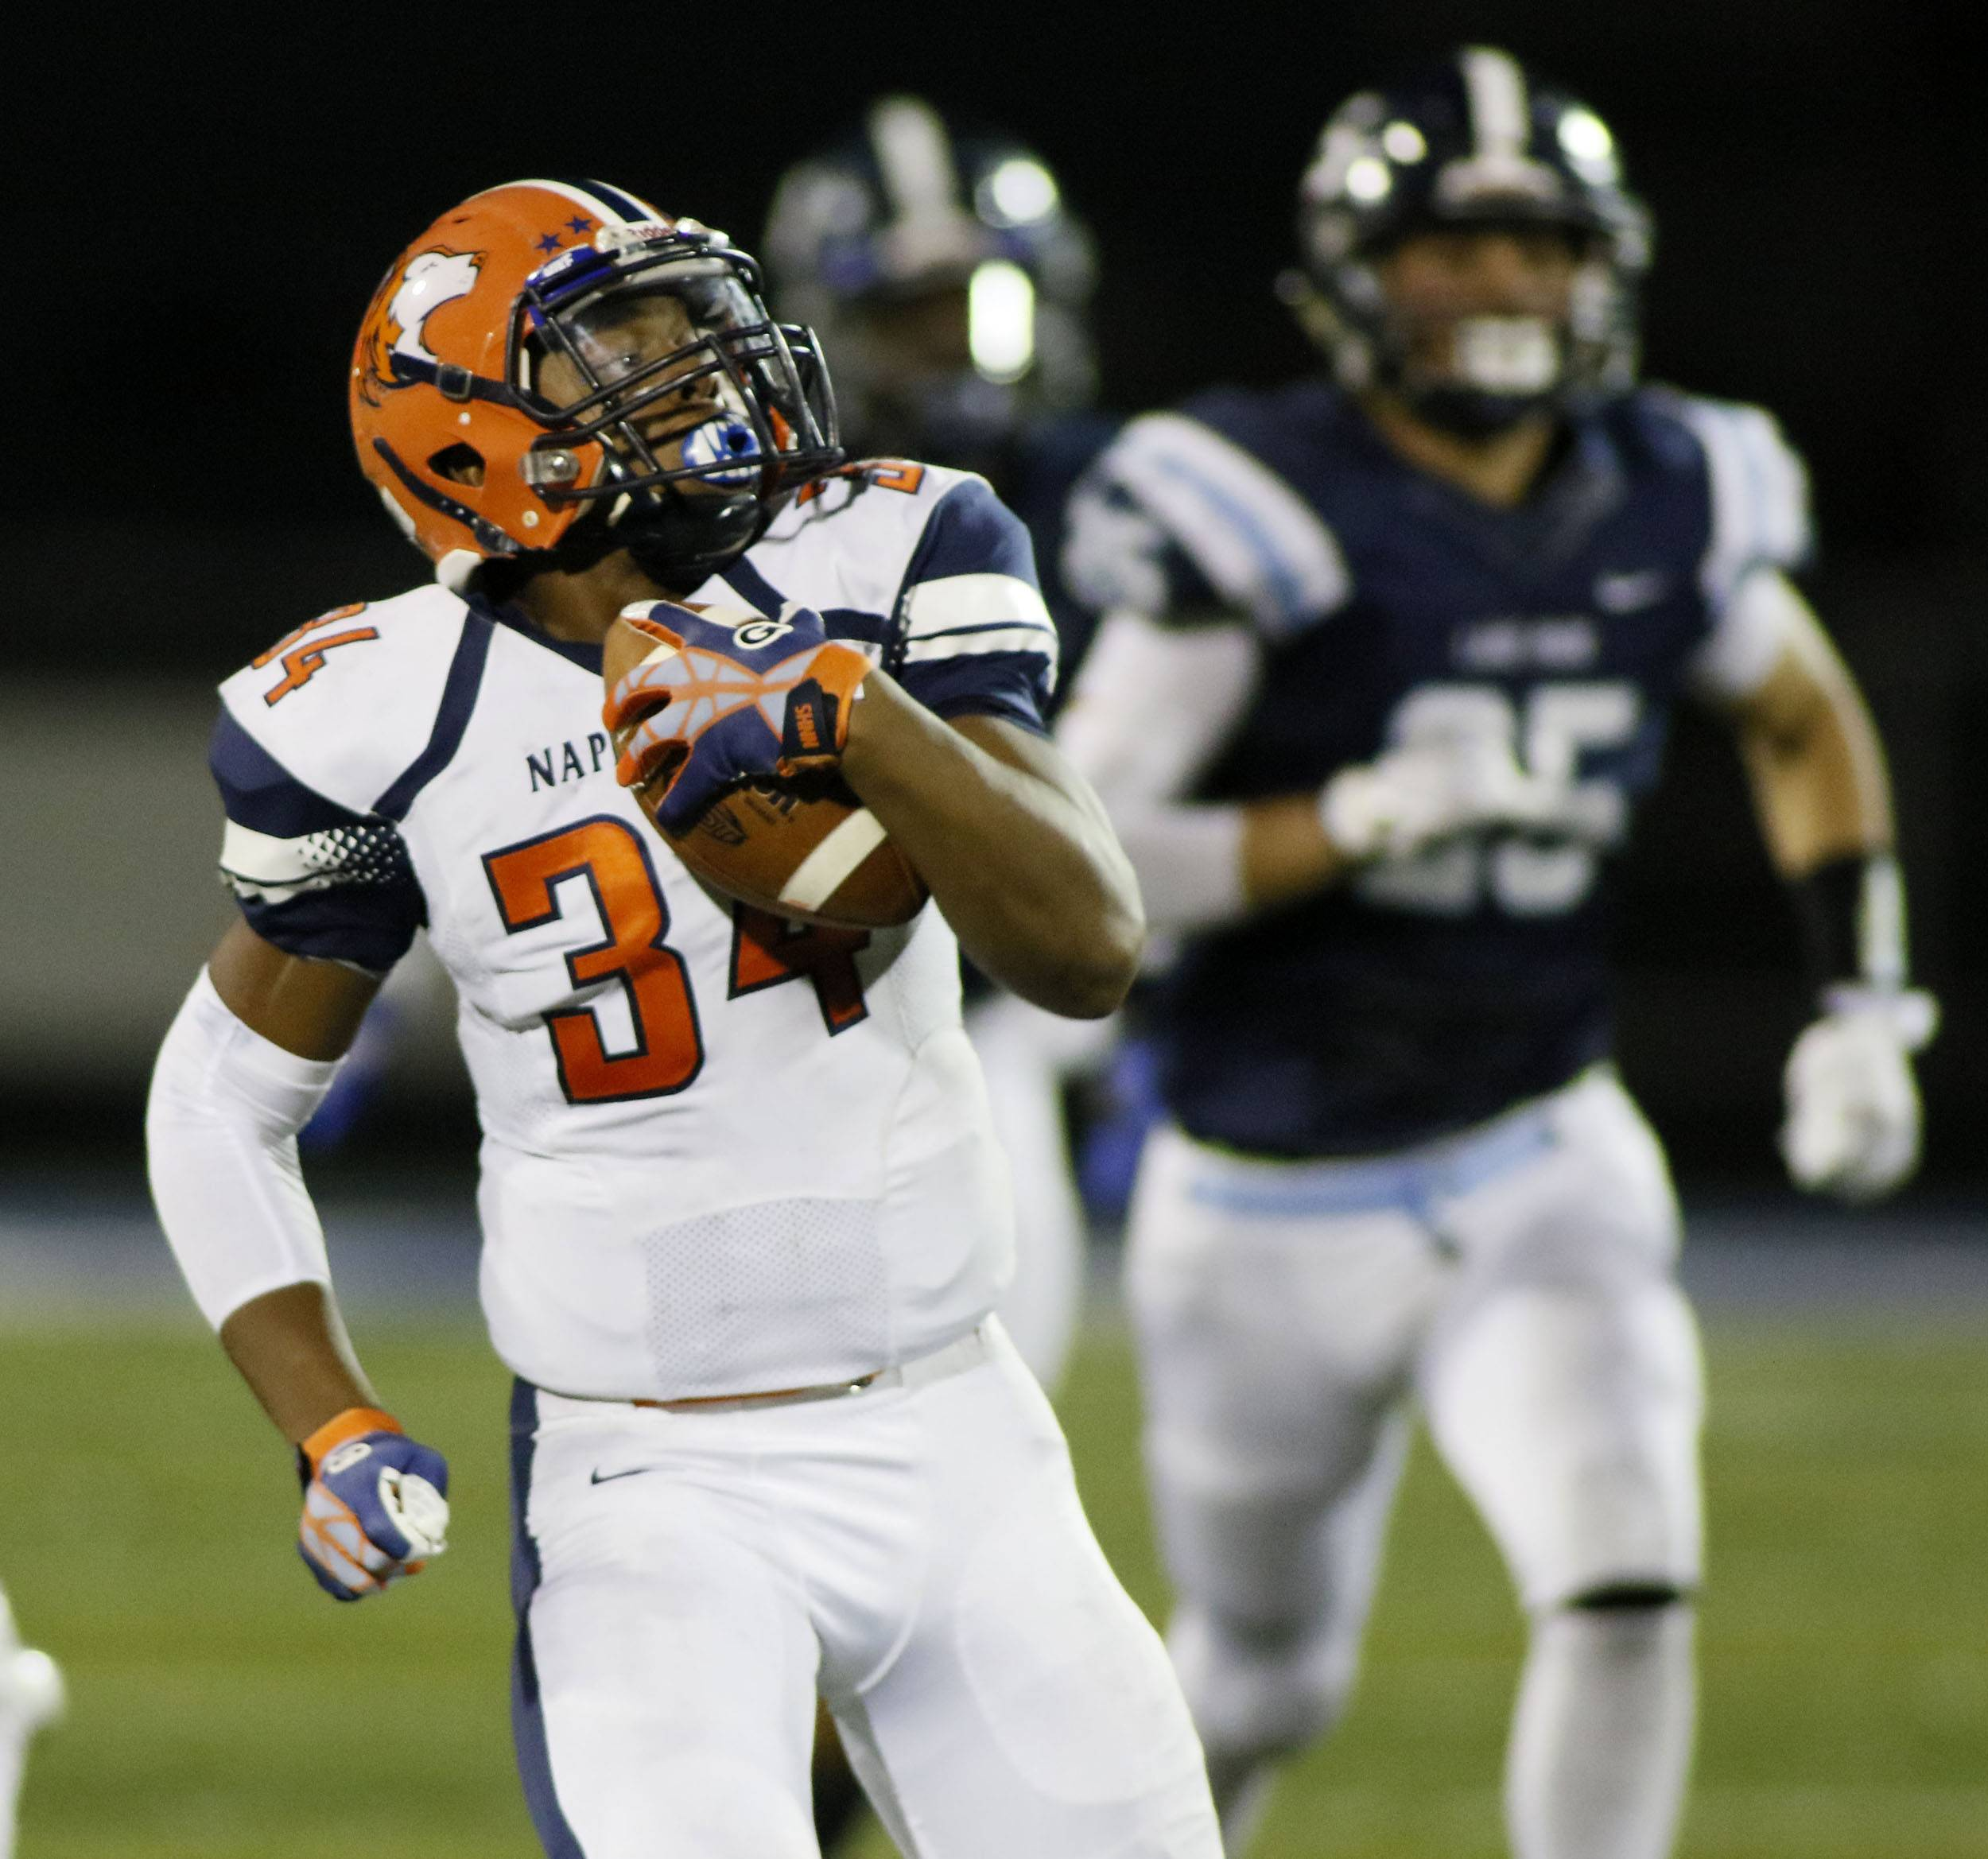 Images: Naperville North over Lake Park, 28-23 in football